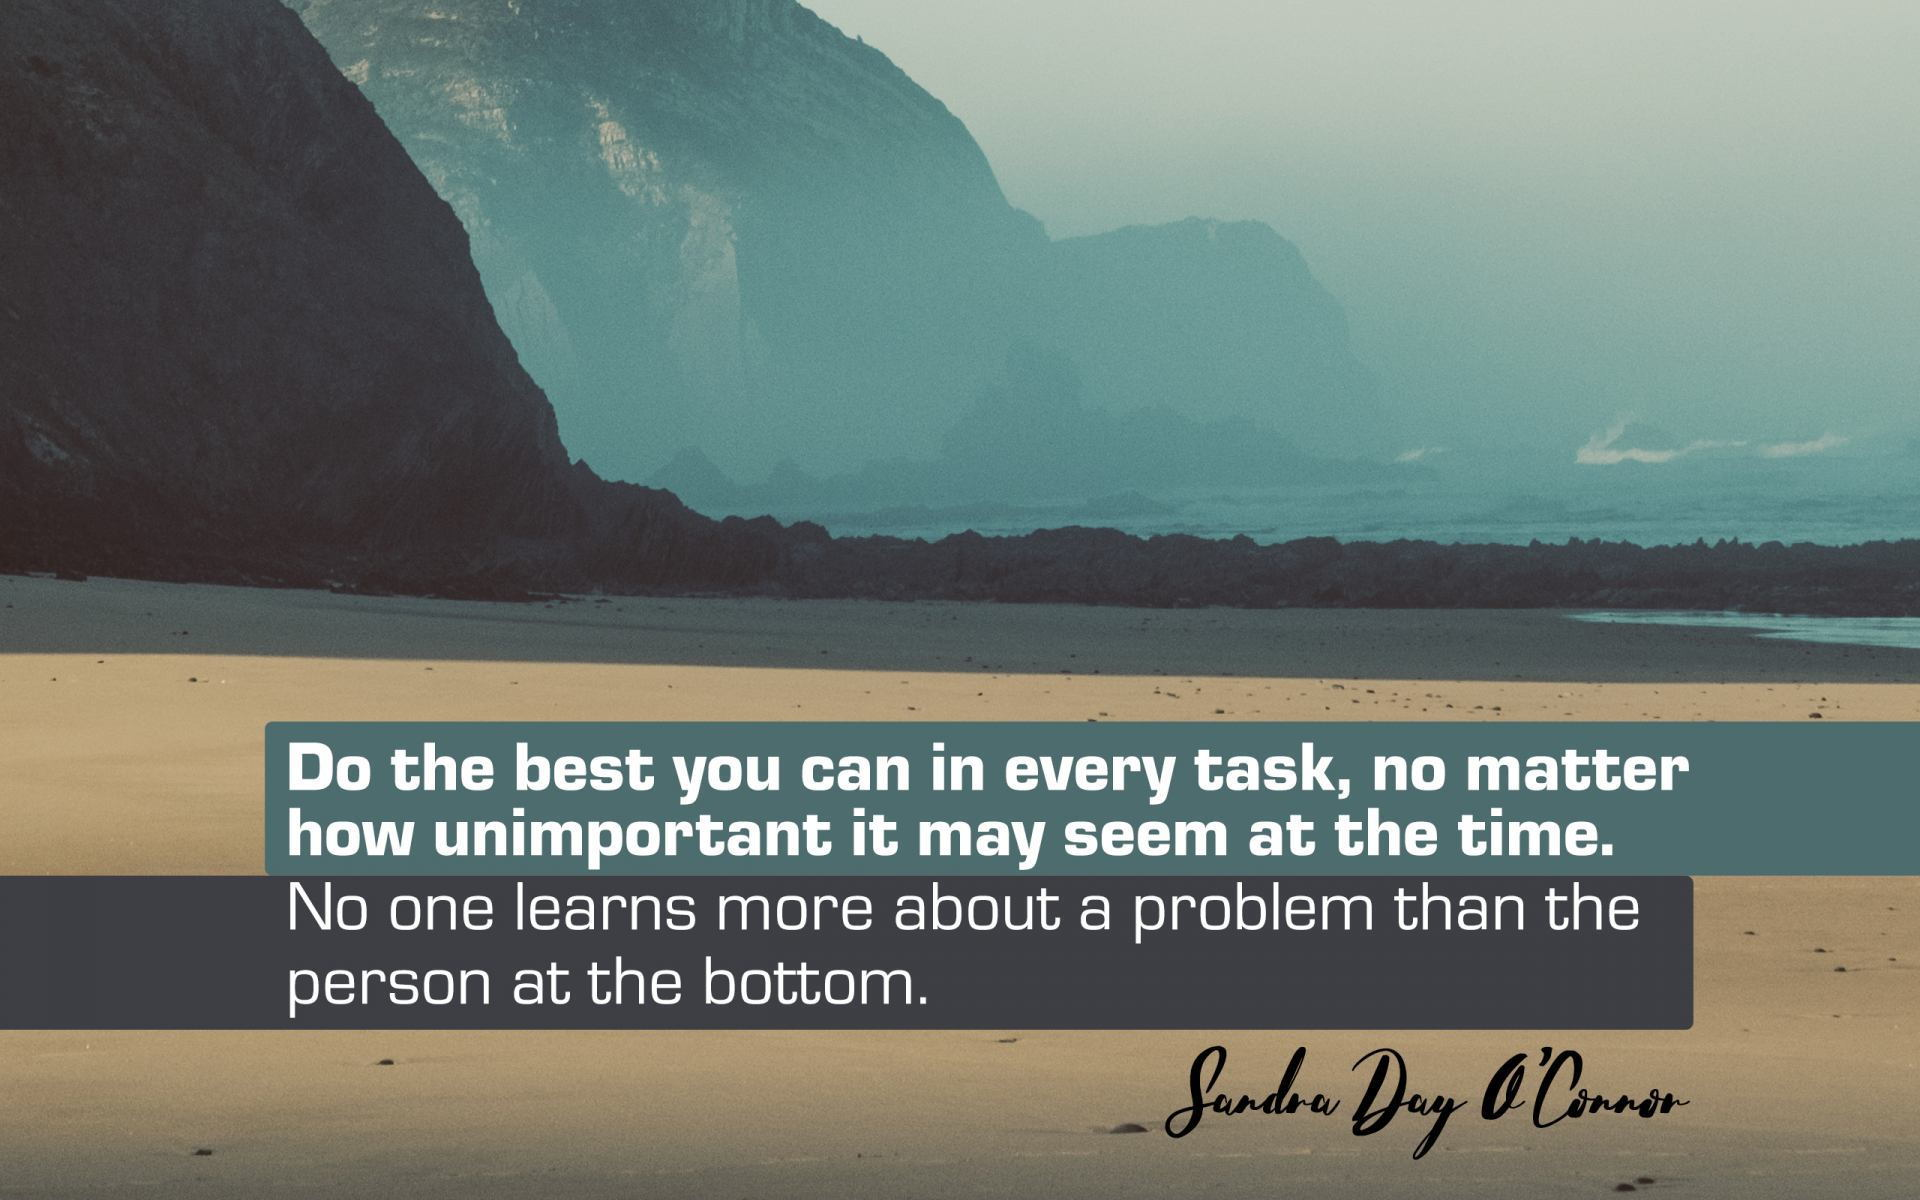 """Do the best you can in every task, no matter how unimportant it may seem at the time. No one learns more about a problem than the person at the bottom."" Sandra Day O'Connor! [1920×1200]"